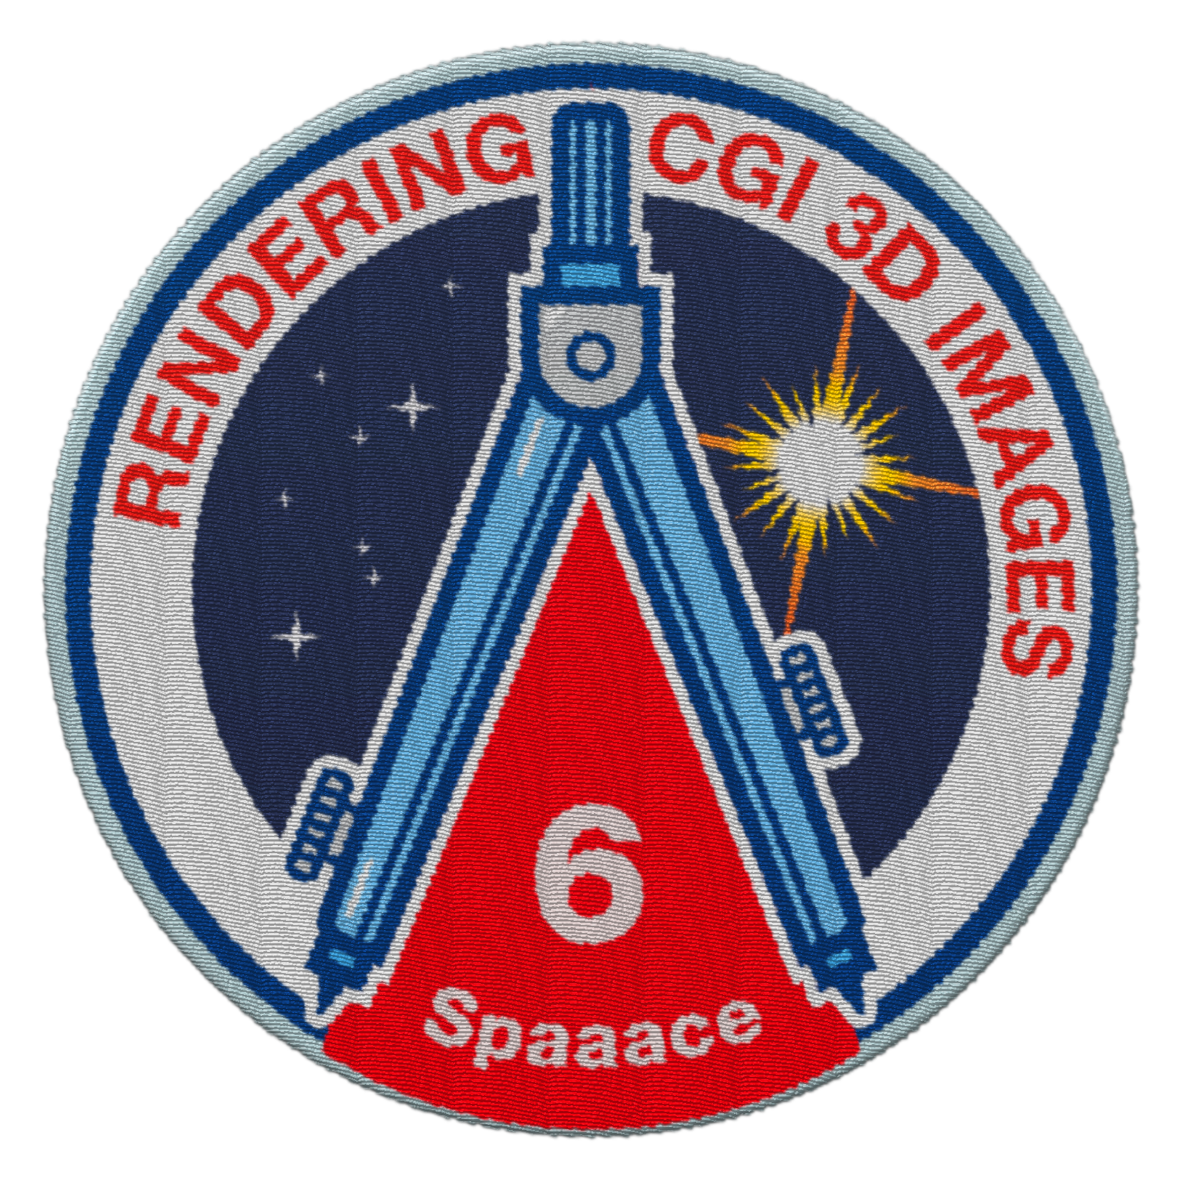 Spaaace - patch communication rendering 3D CGI